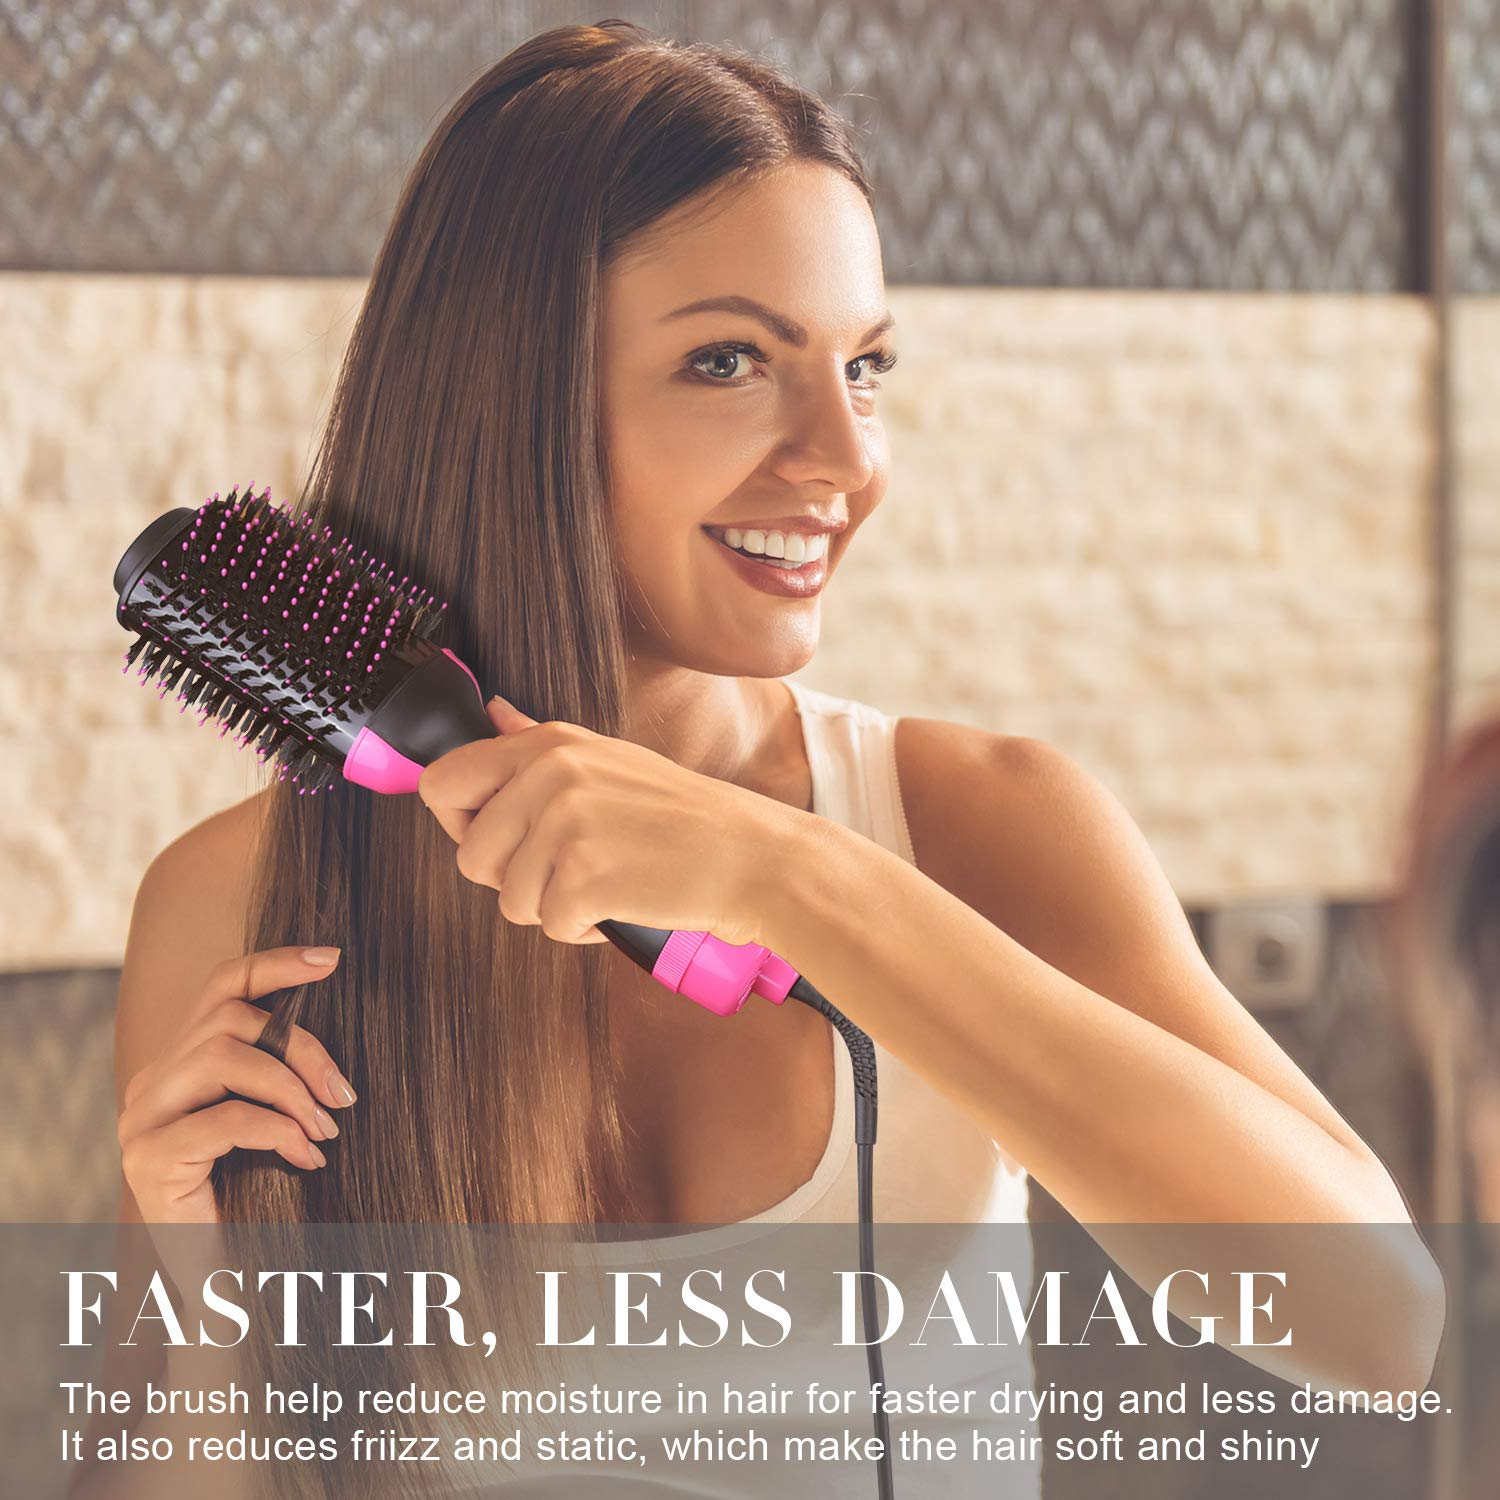 One Step Hair Dryer and Styler Volumizer, Hair Dryer Brush, Hot Air Brush, 3 in 1 Smooth Frizz with Ionic Technology Brush by ROUNDSQUARE by ROUNDSQUARE (Image #8)